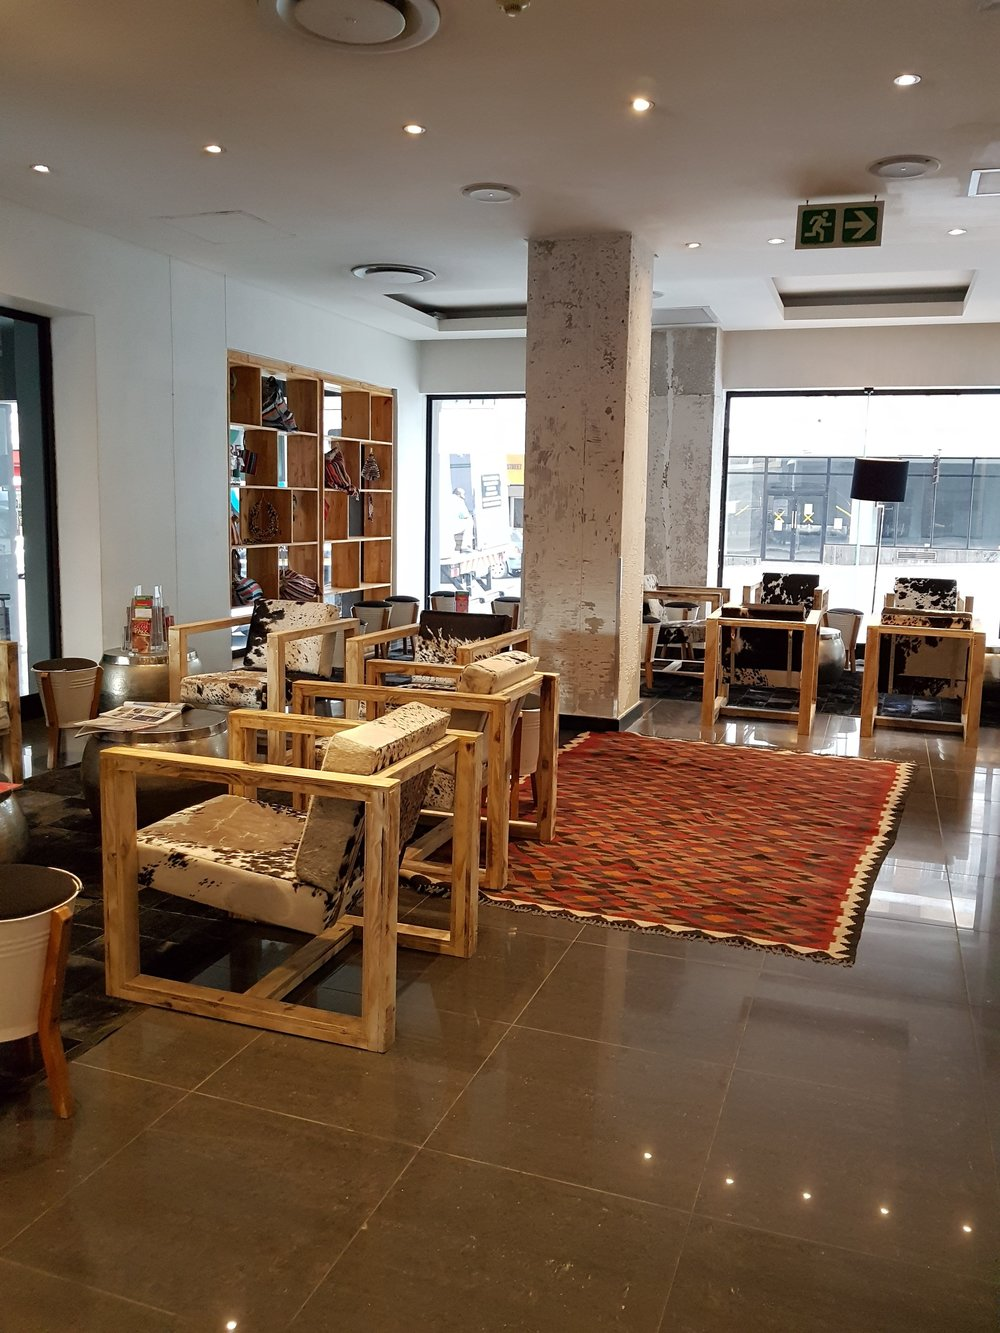 Review: Once in Joburg - Reception